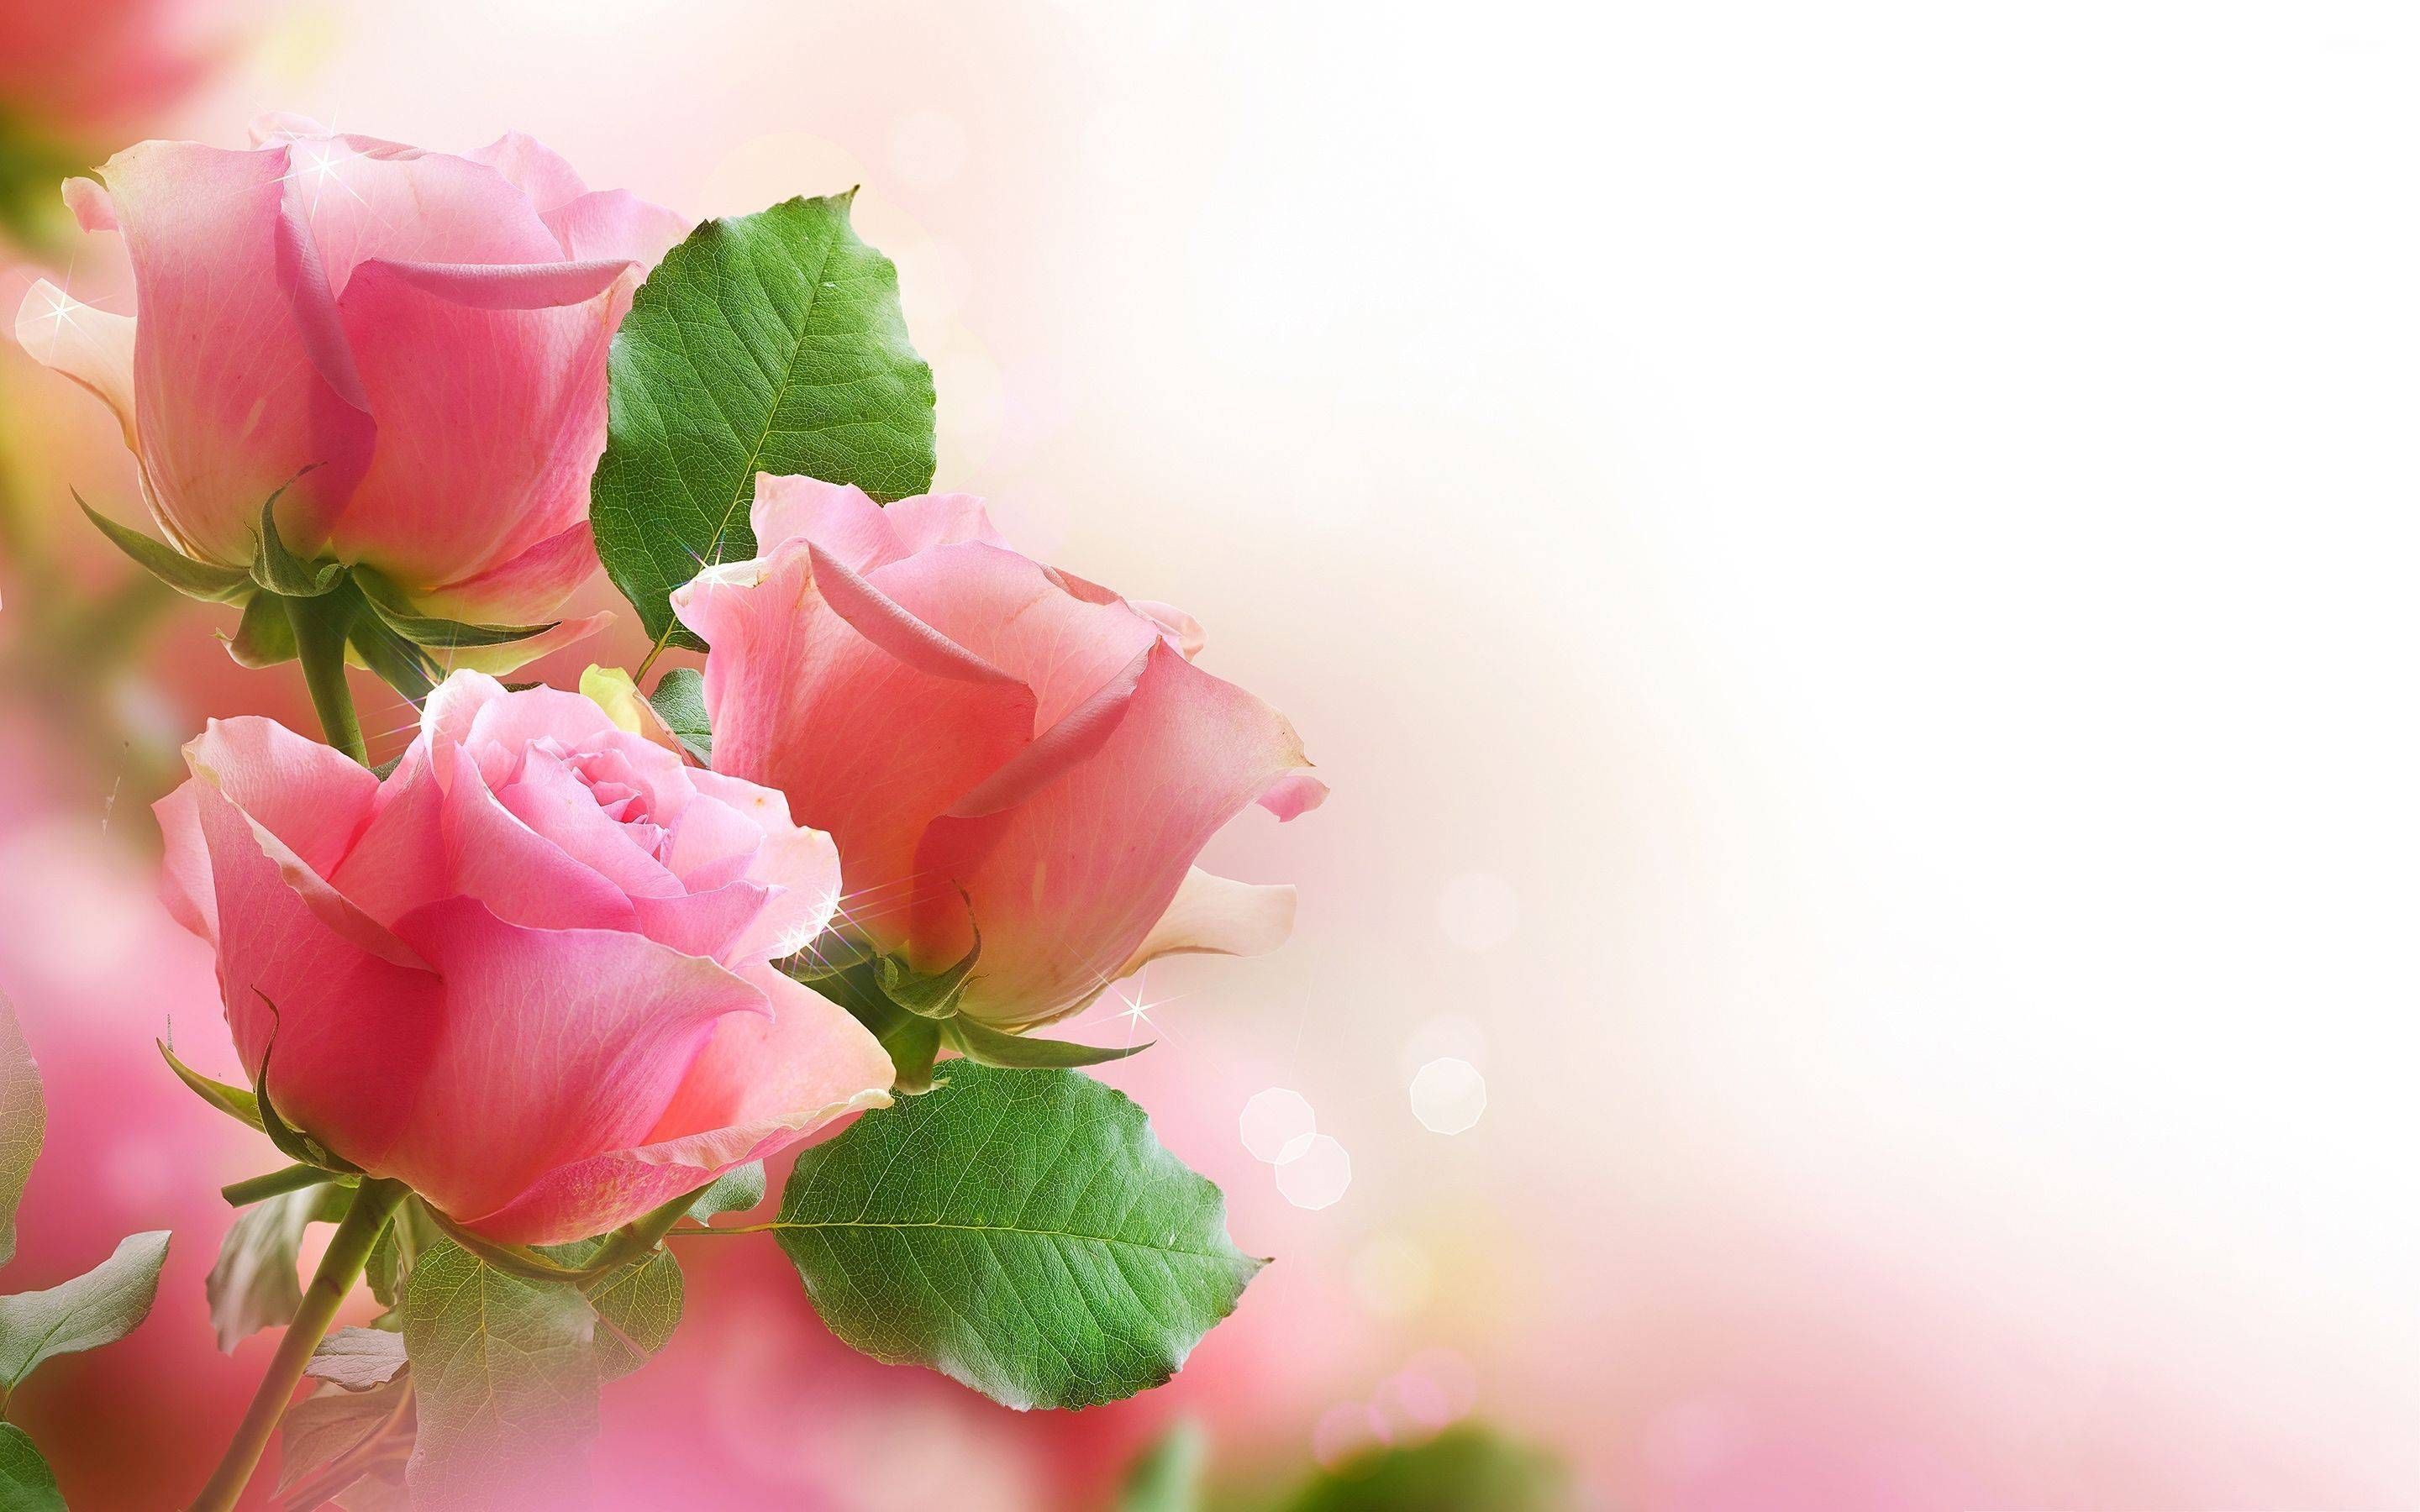 Hd Wallpaper Pink Rose Best Wallpaper Hd Beautiful Flowers Wallpapers Pink Roses Background Flower Wallpaper